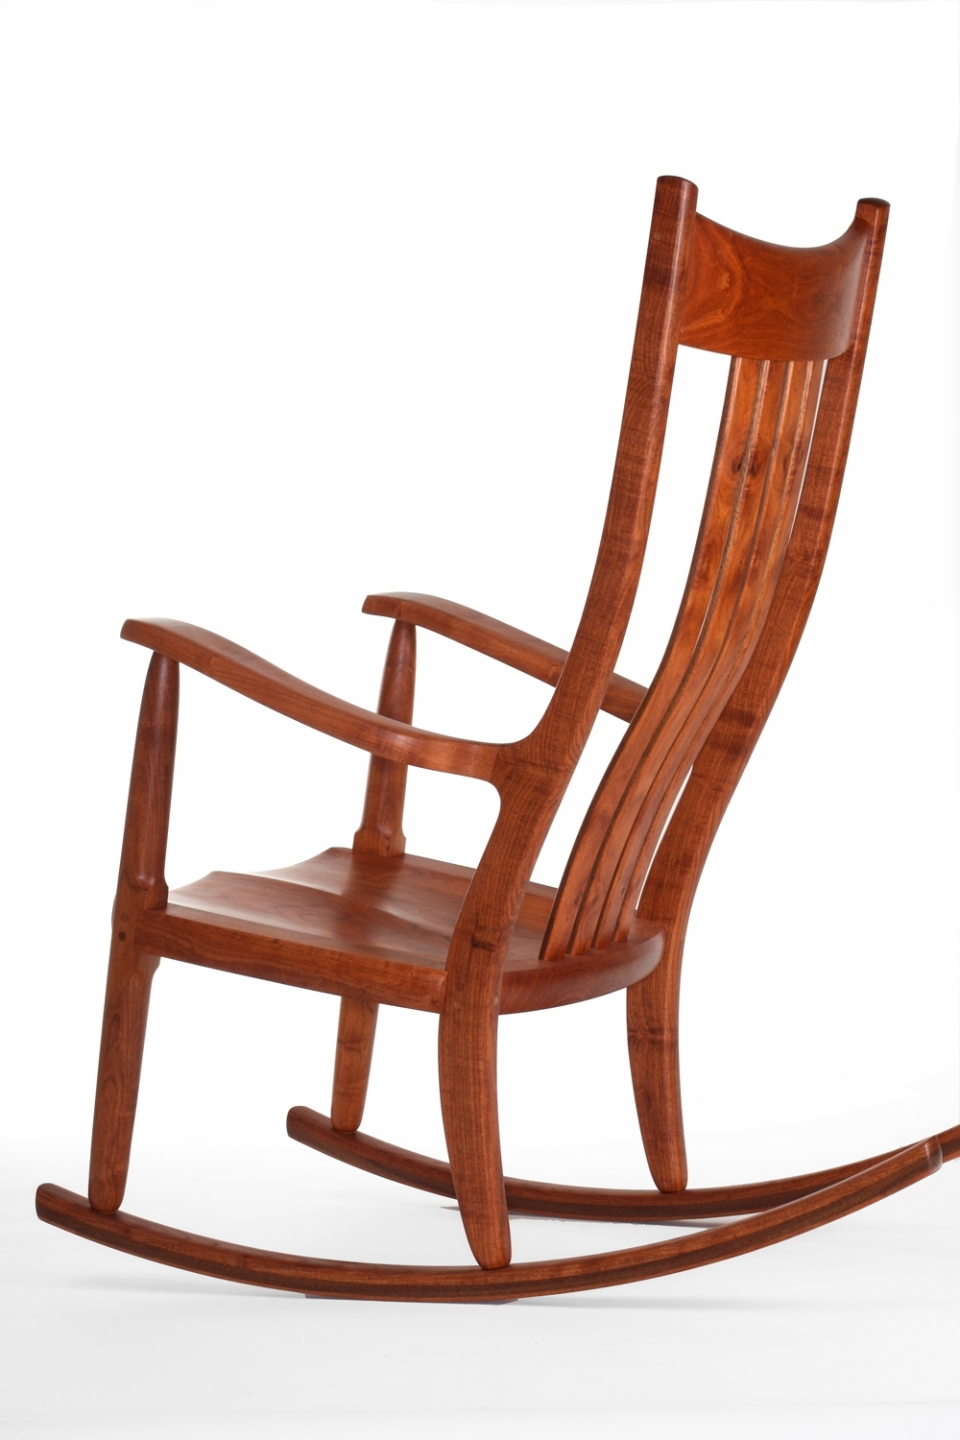 Best Place To Buy Rocking Chairs Directory Of Handmade Rocking Chair Makers Gary Weeks And Company